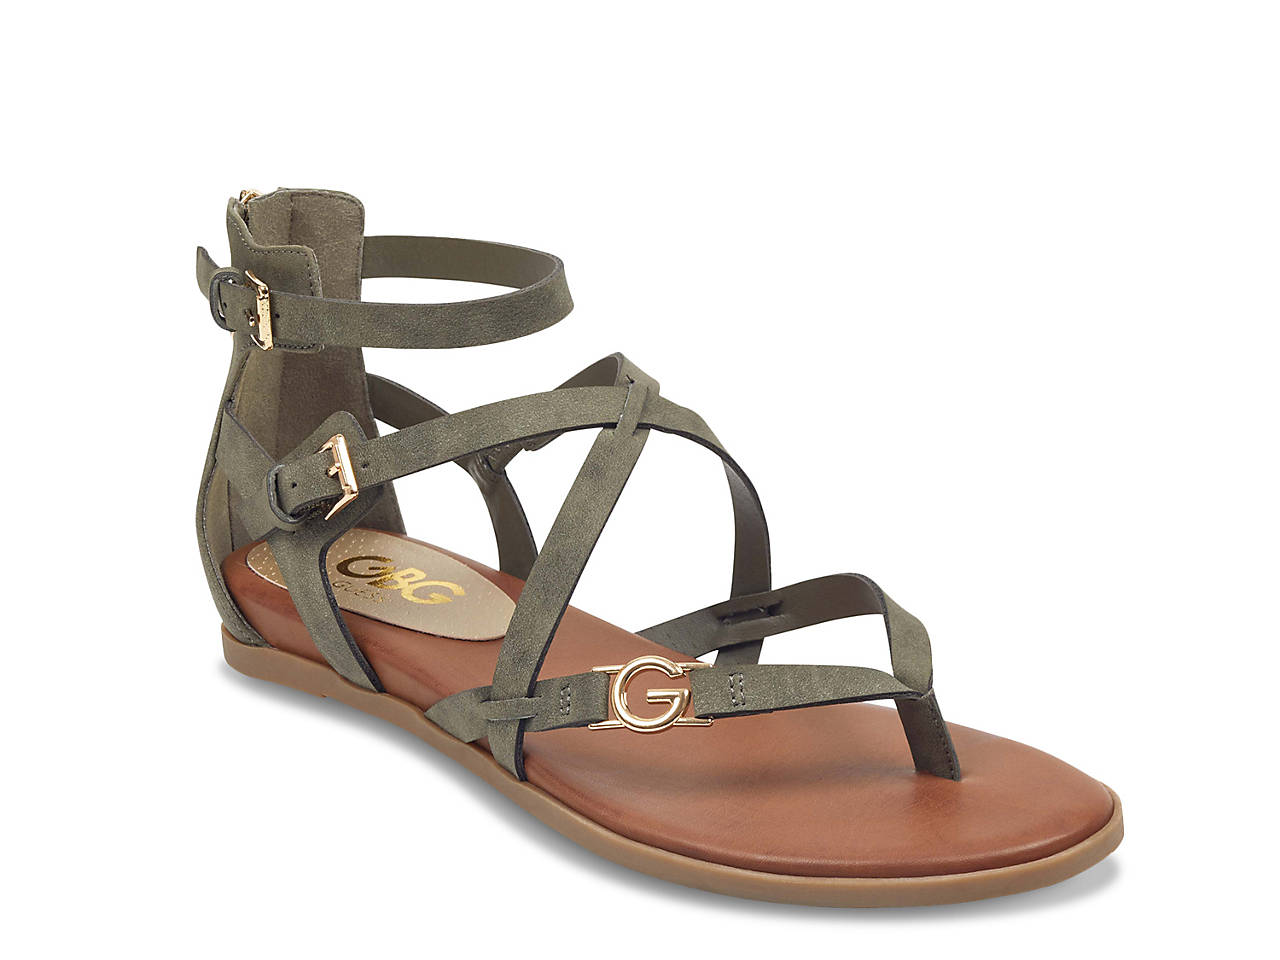 0d10182af12c G by GUESS Carlyn Gladiator Sandal Women s Shoes